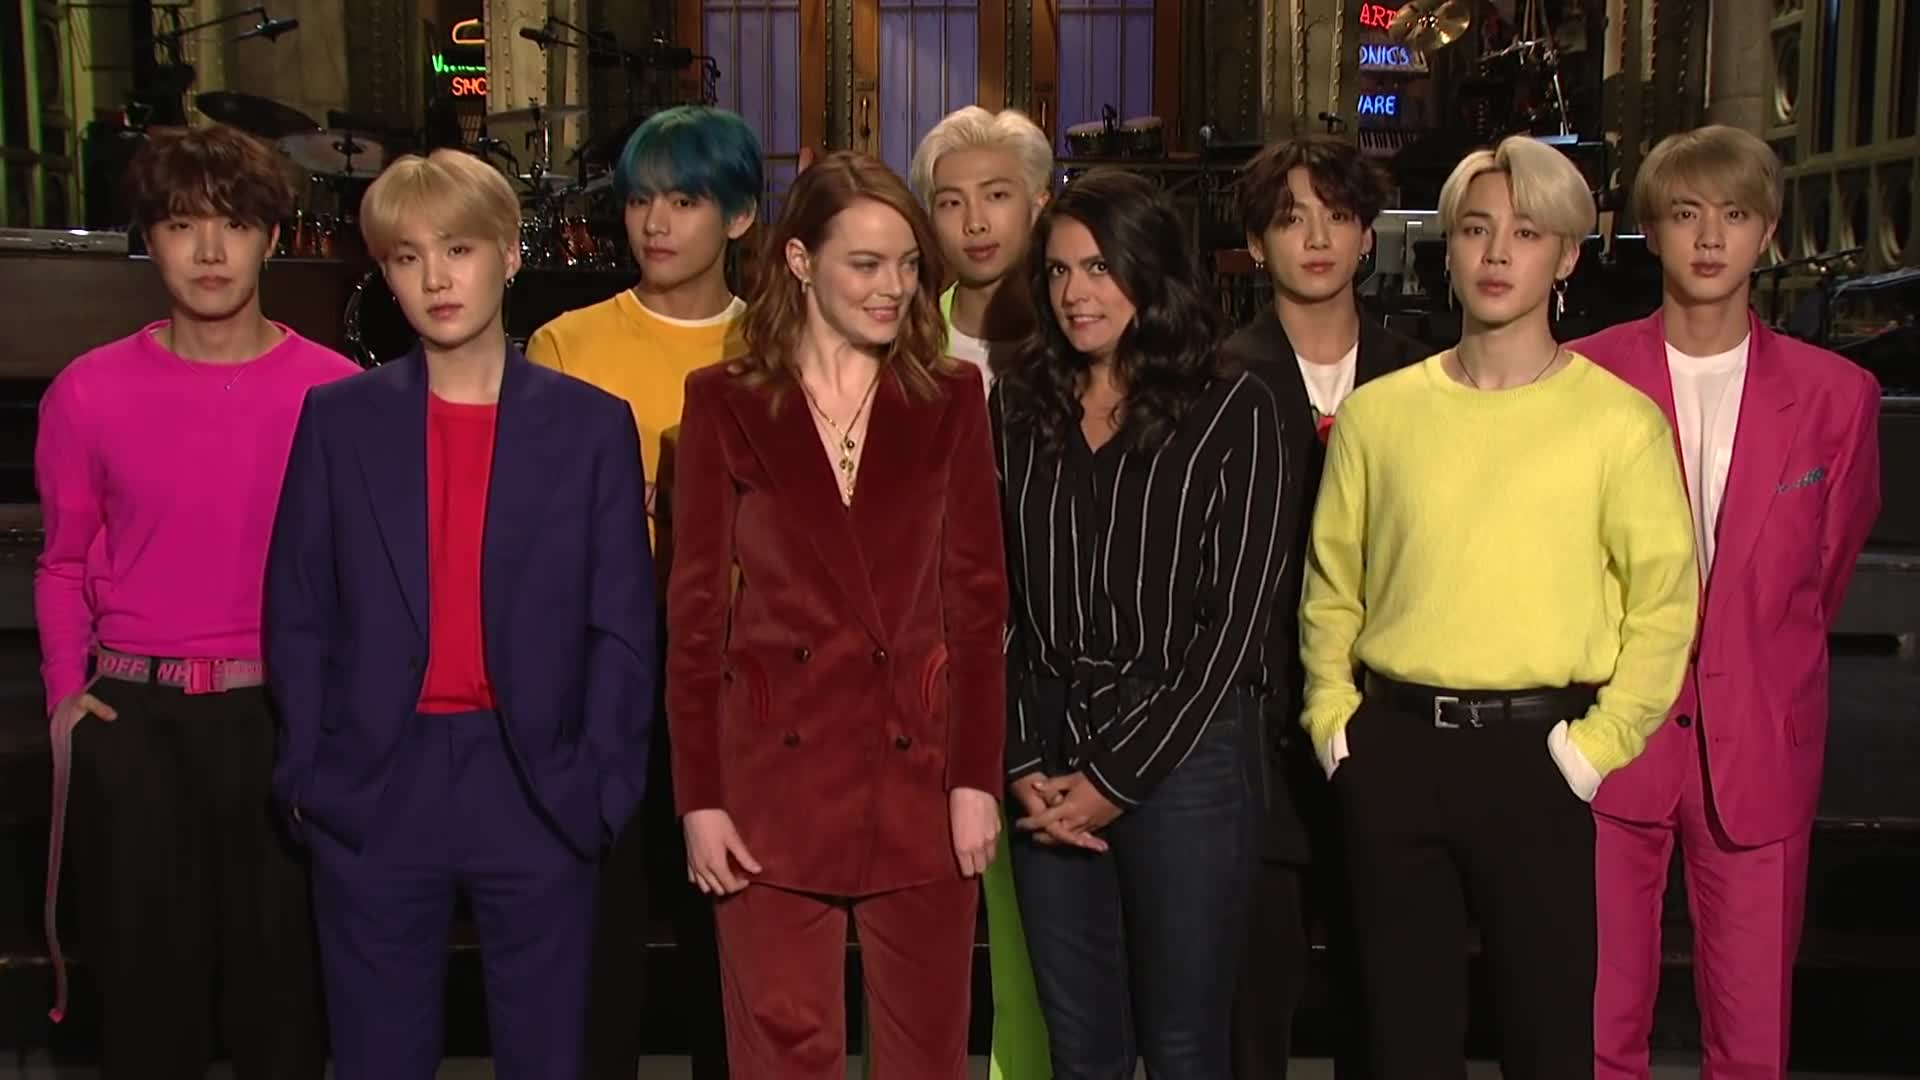 bts, bts saturday night live, celebs, emma stone, emma stone bts, emma stone cecily strong, emma stone cecily strong bts, saturday night live, saturday night live host, snl, snl bts, snl emma stone, snl host, Emma Stone and Cecily Strong Are Freaking Out About BTS - SNL GIFs